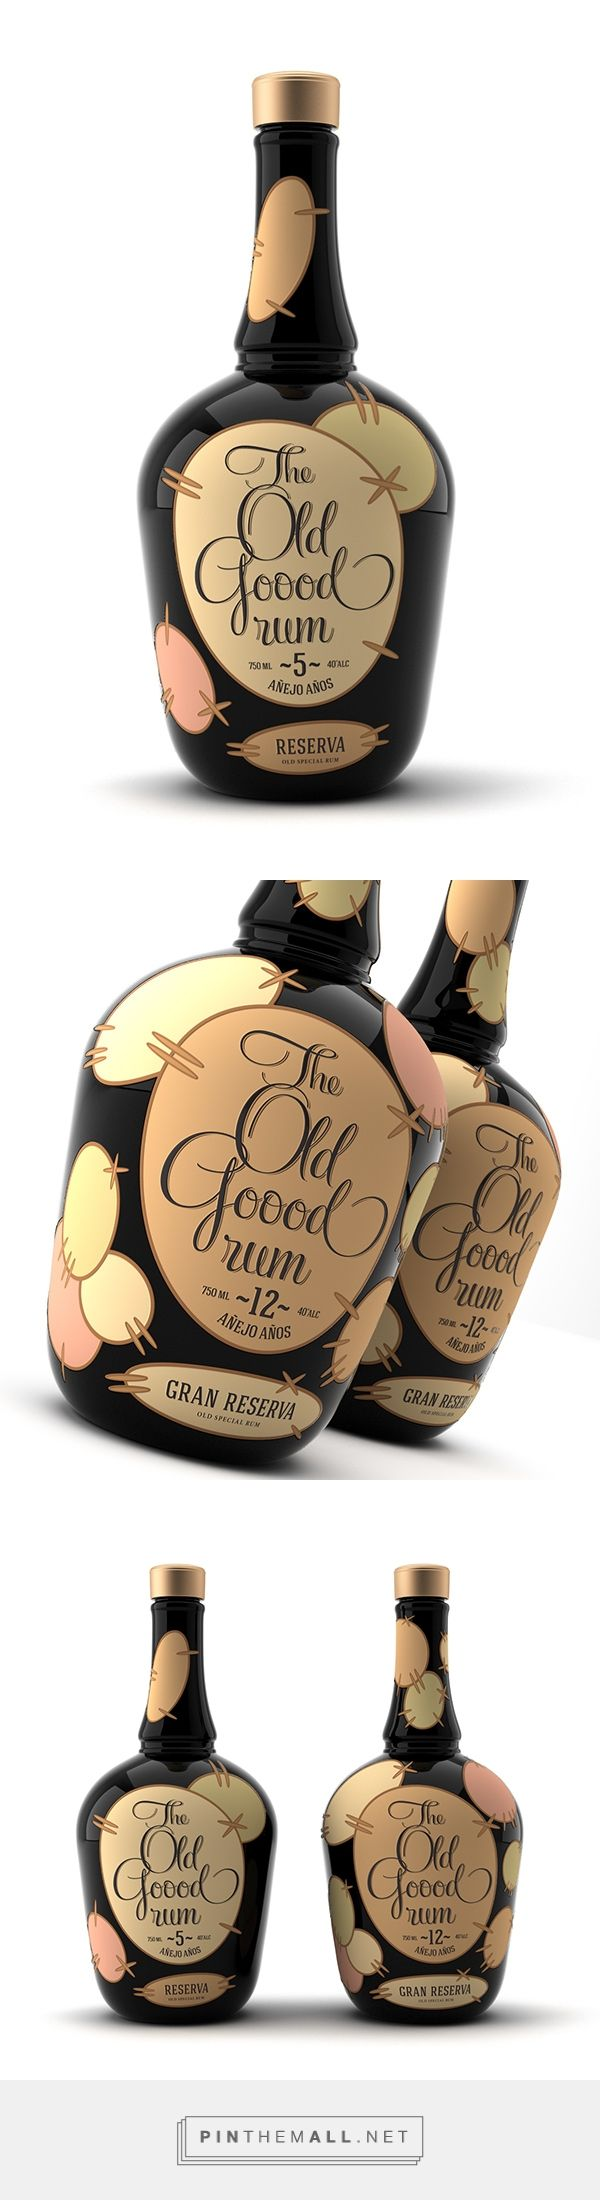 The Old Good Rum Packaging by Pavel Kulinsky | Fivestar Branding Agency – Design and Branding Agency & Curated Inspiration Gallery